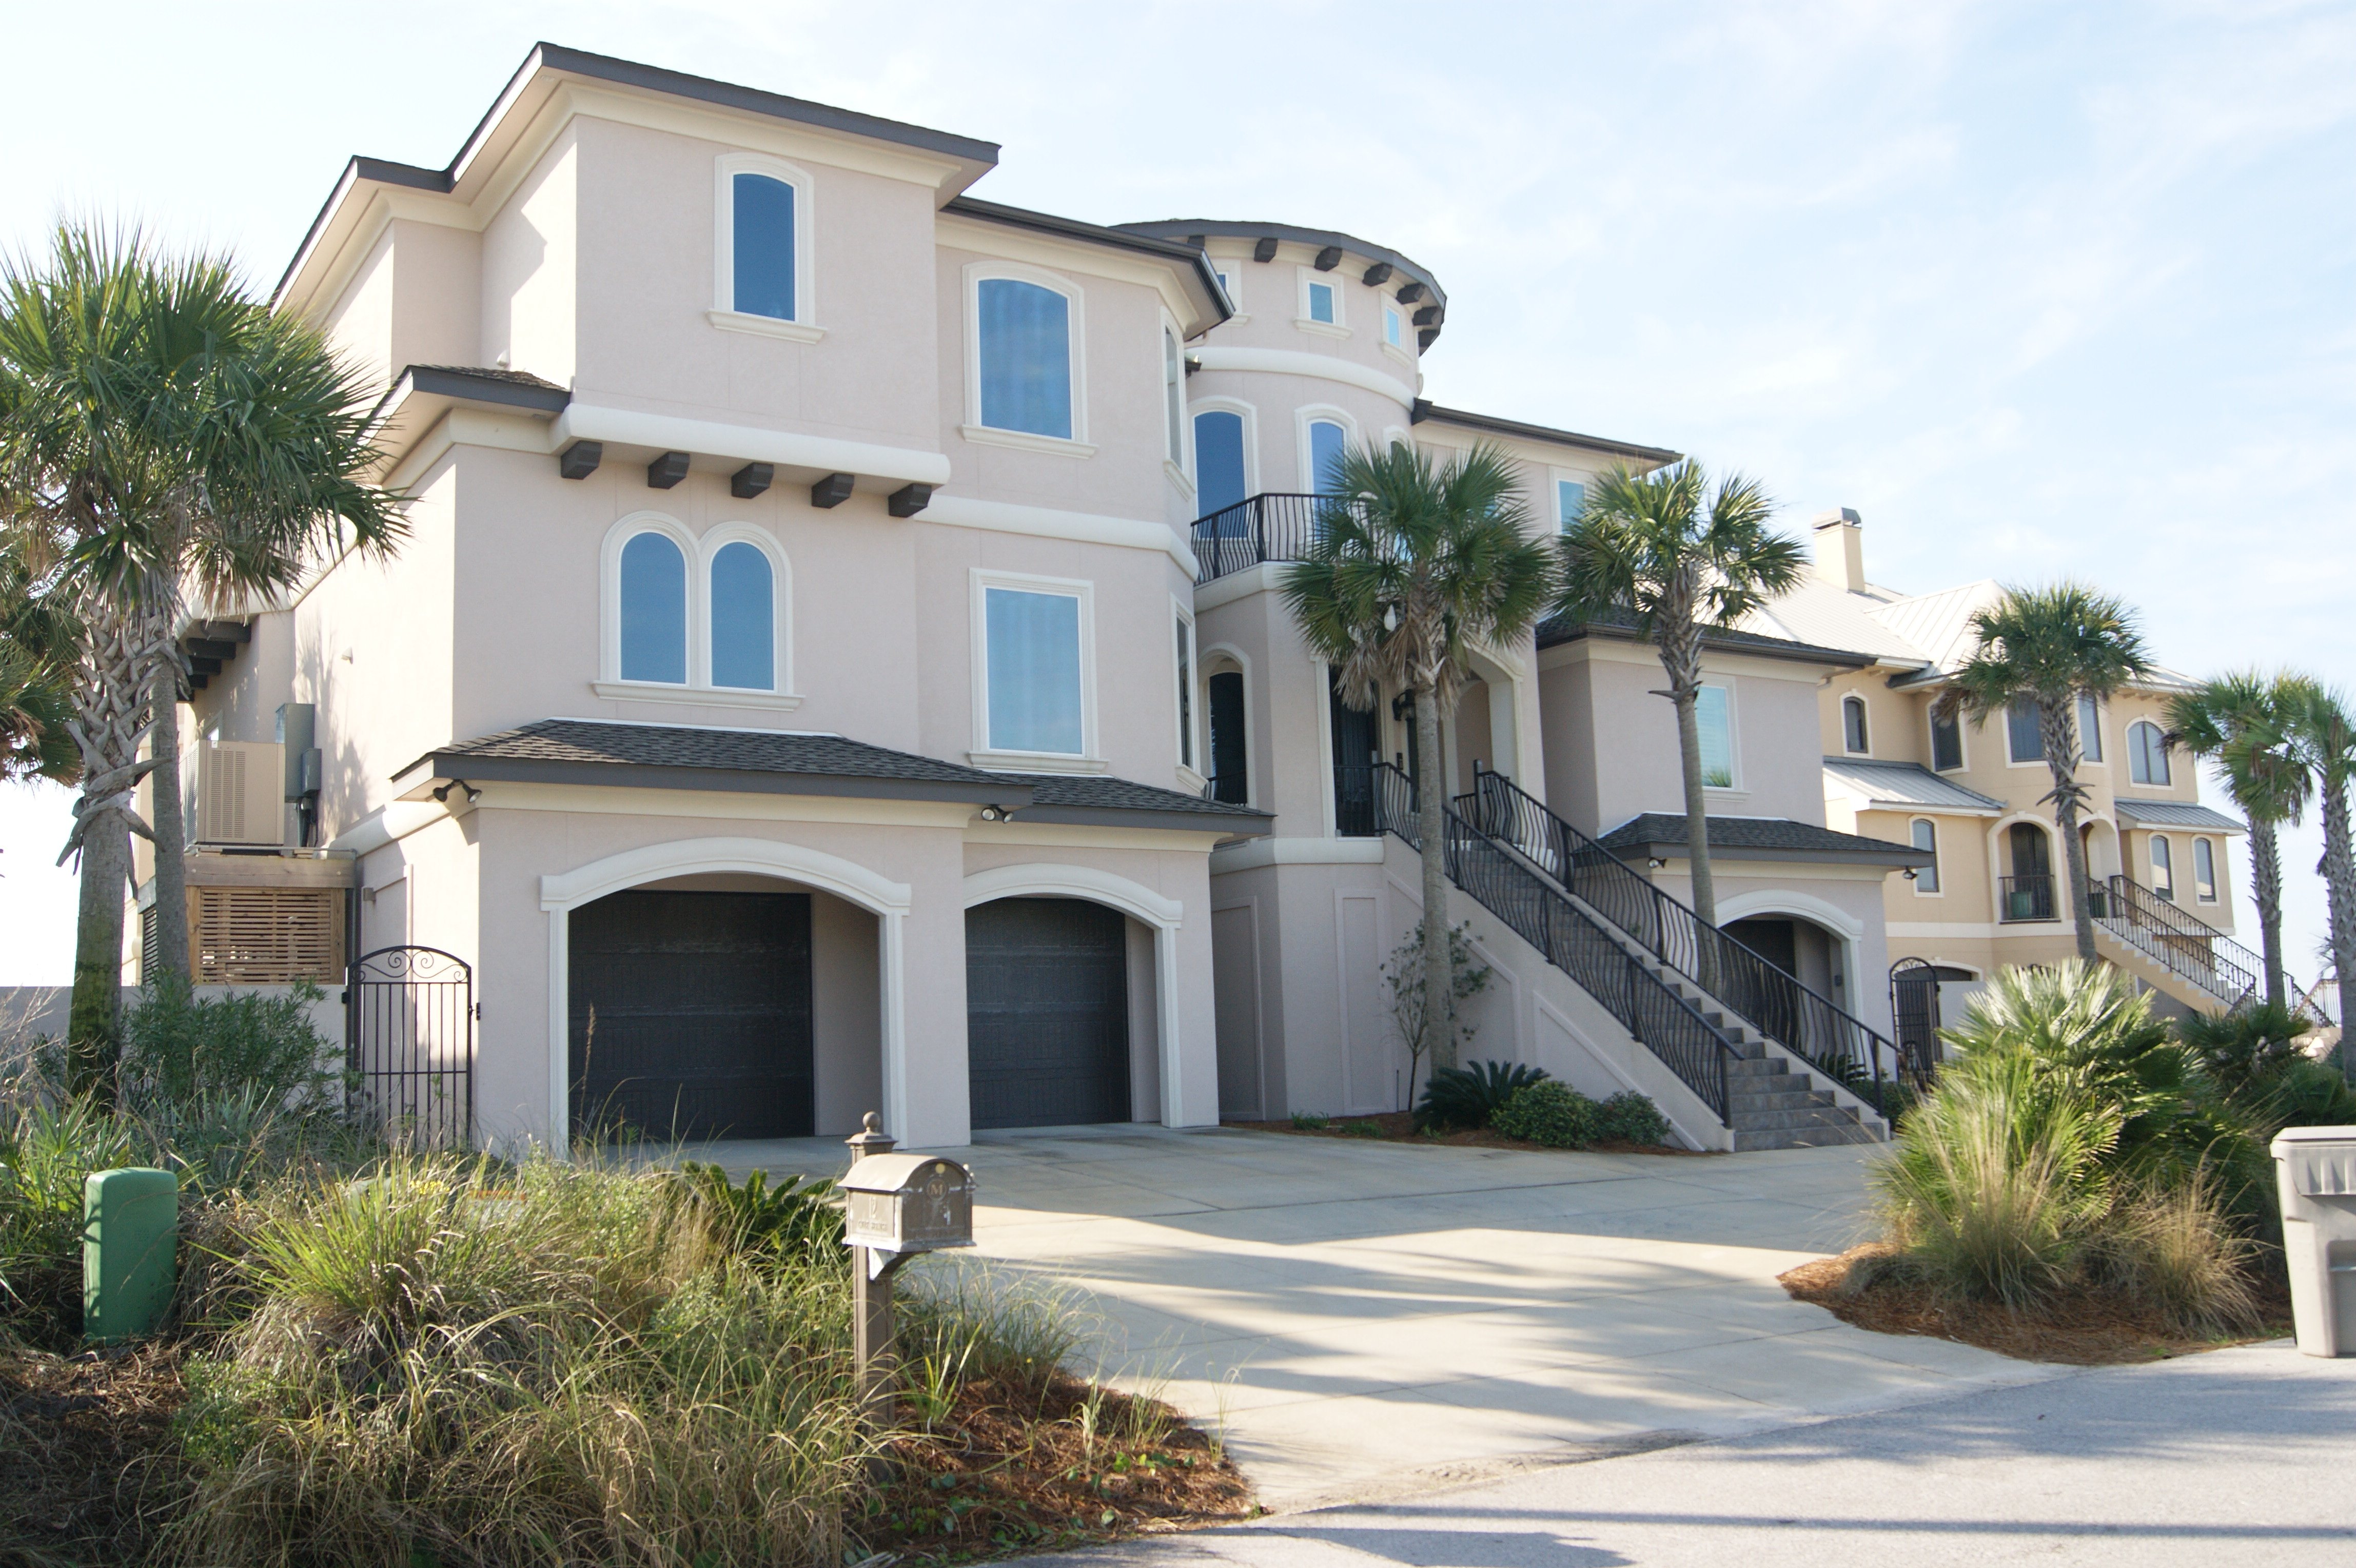 New Home Builders Gulf Breeze, FL